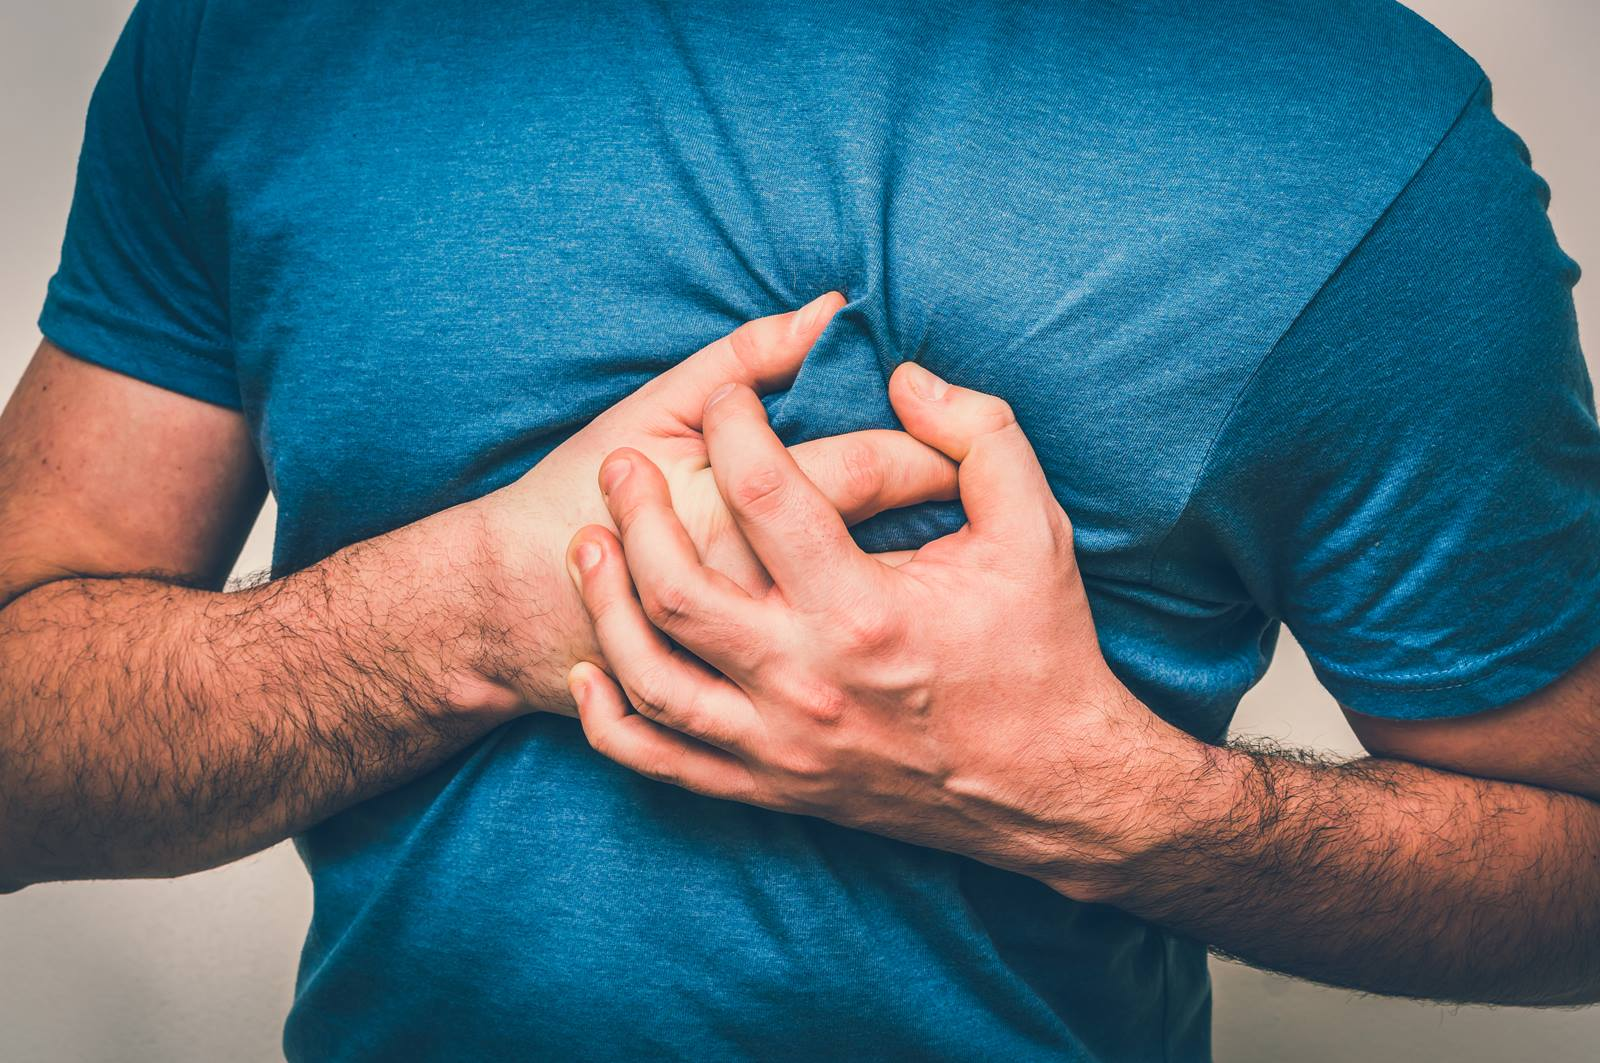 5 Heart Attack Signs in Men That You Should NOT IGNORE